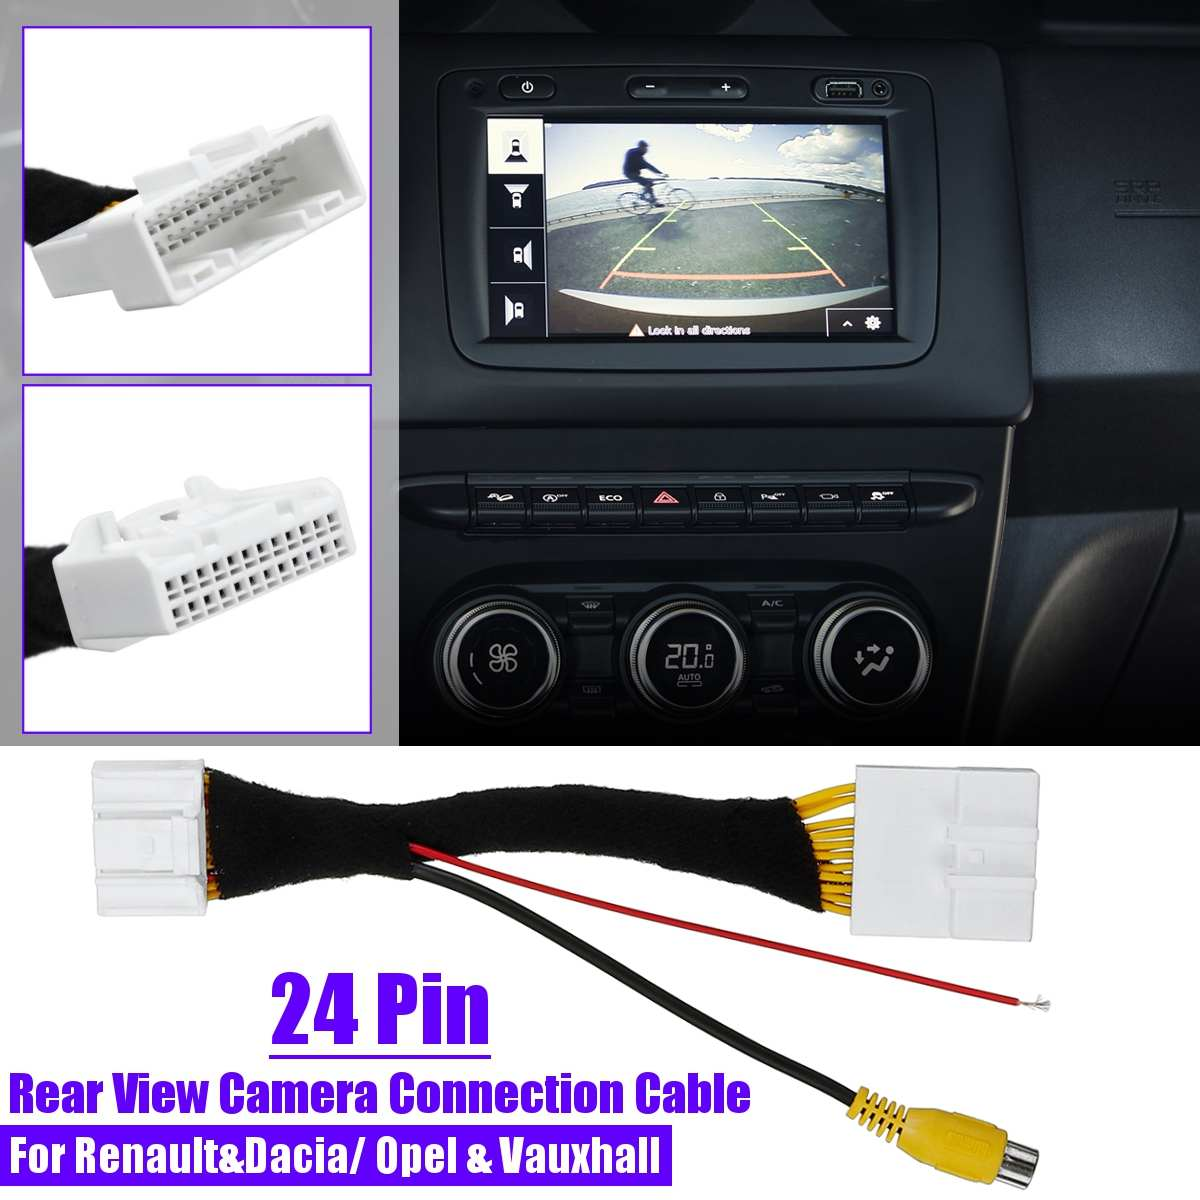 24Pin Adapter Rear View Camera Connection Cable For Renault&Dacia For Opel For Vauxhall For Clio Estate 2012-up For Vivaro 2014+